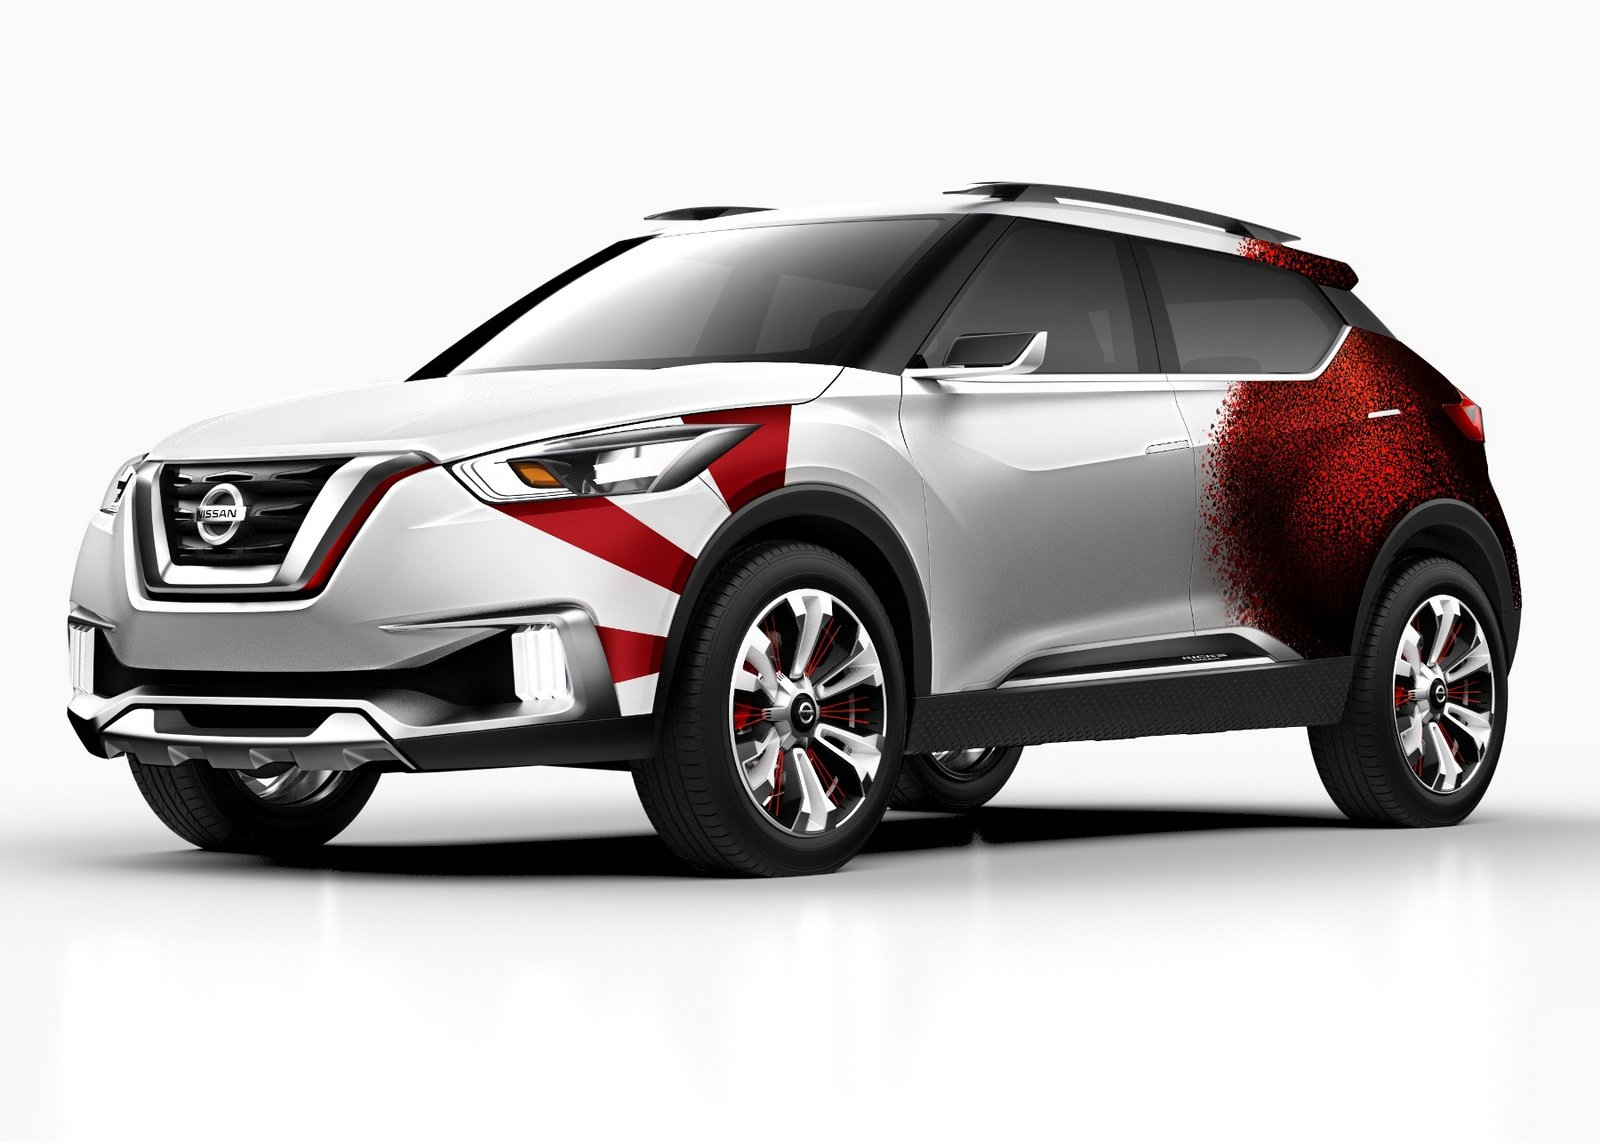 Latest Nissan Kicks Concept Given A Carnival Paint Scheme In Brazil Free Download